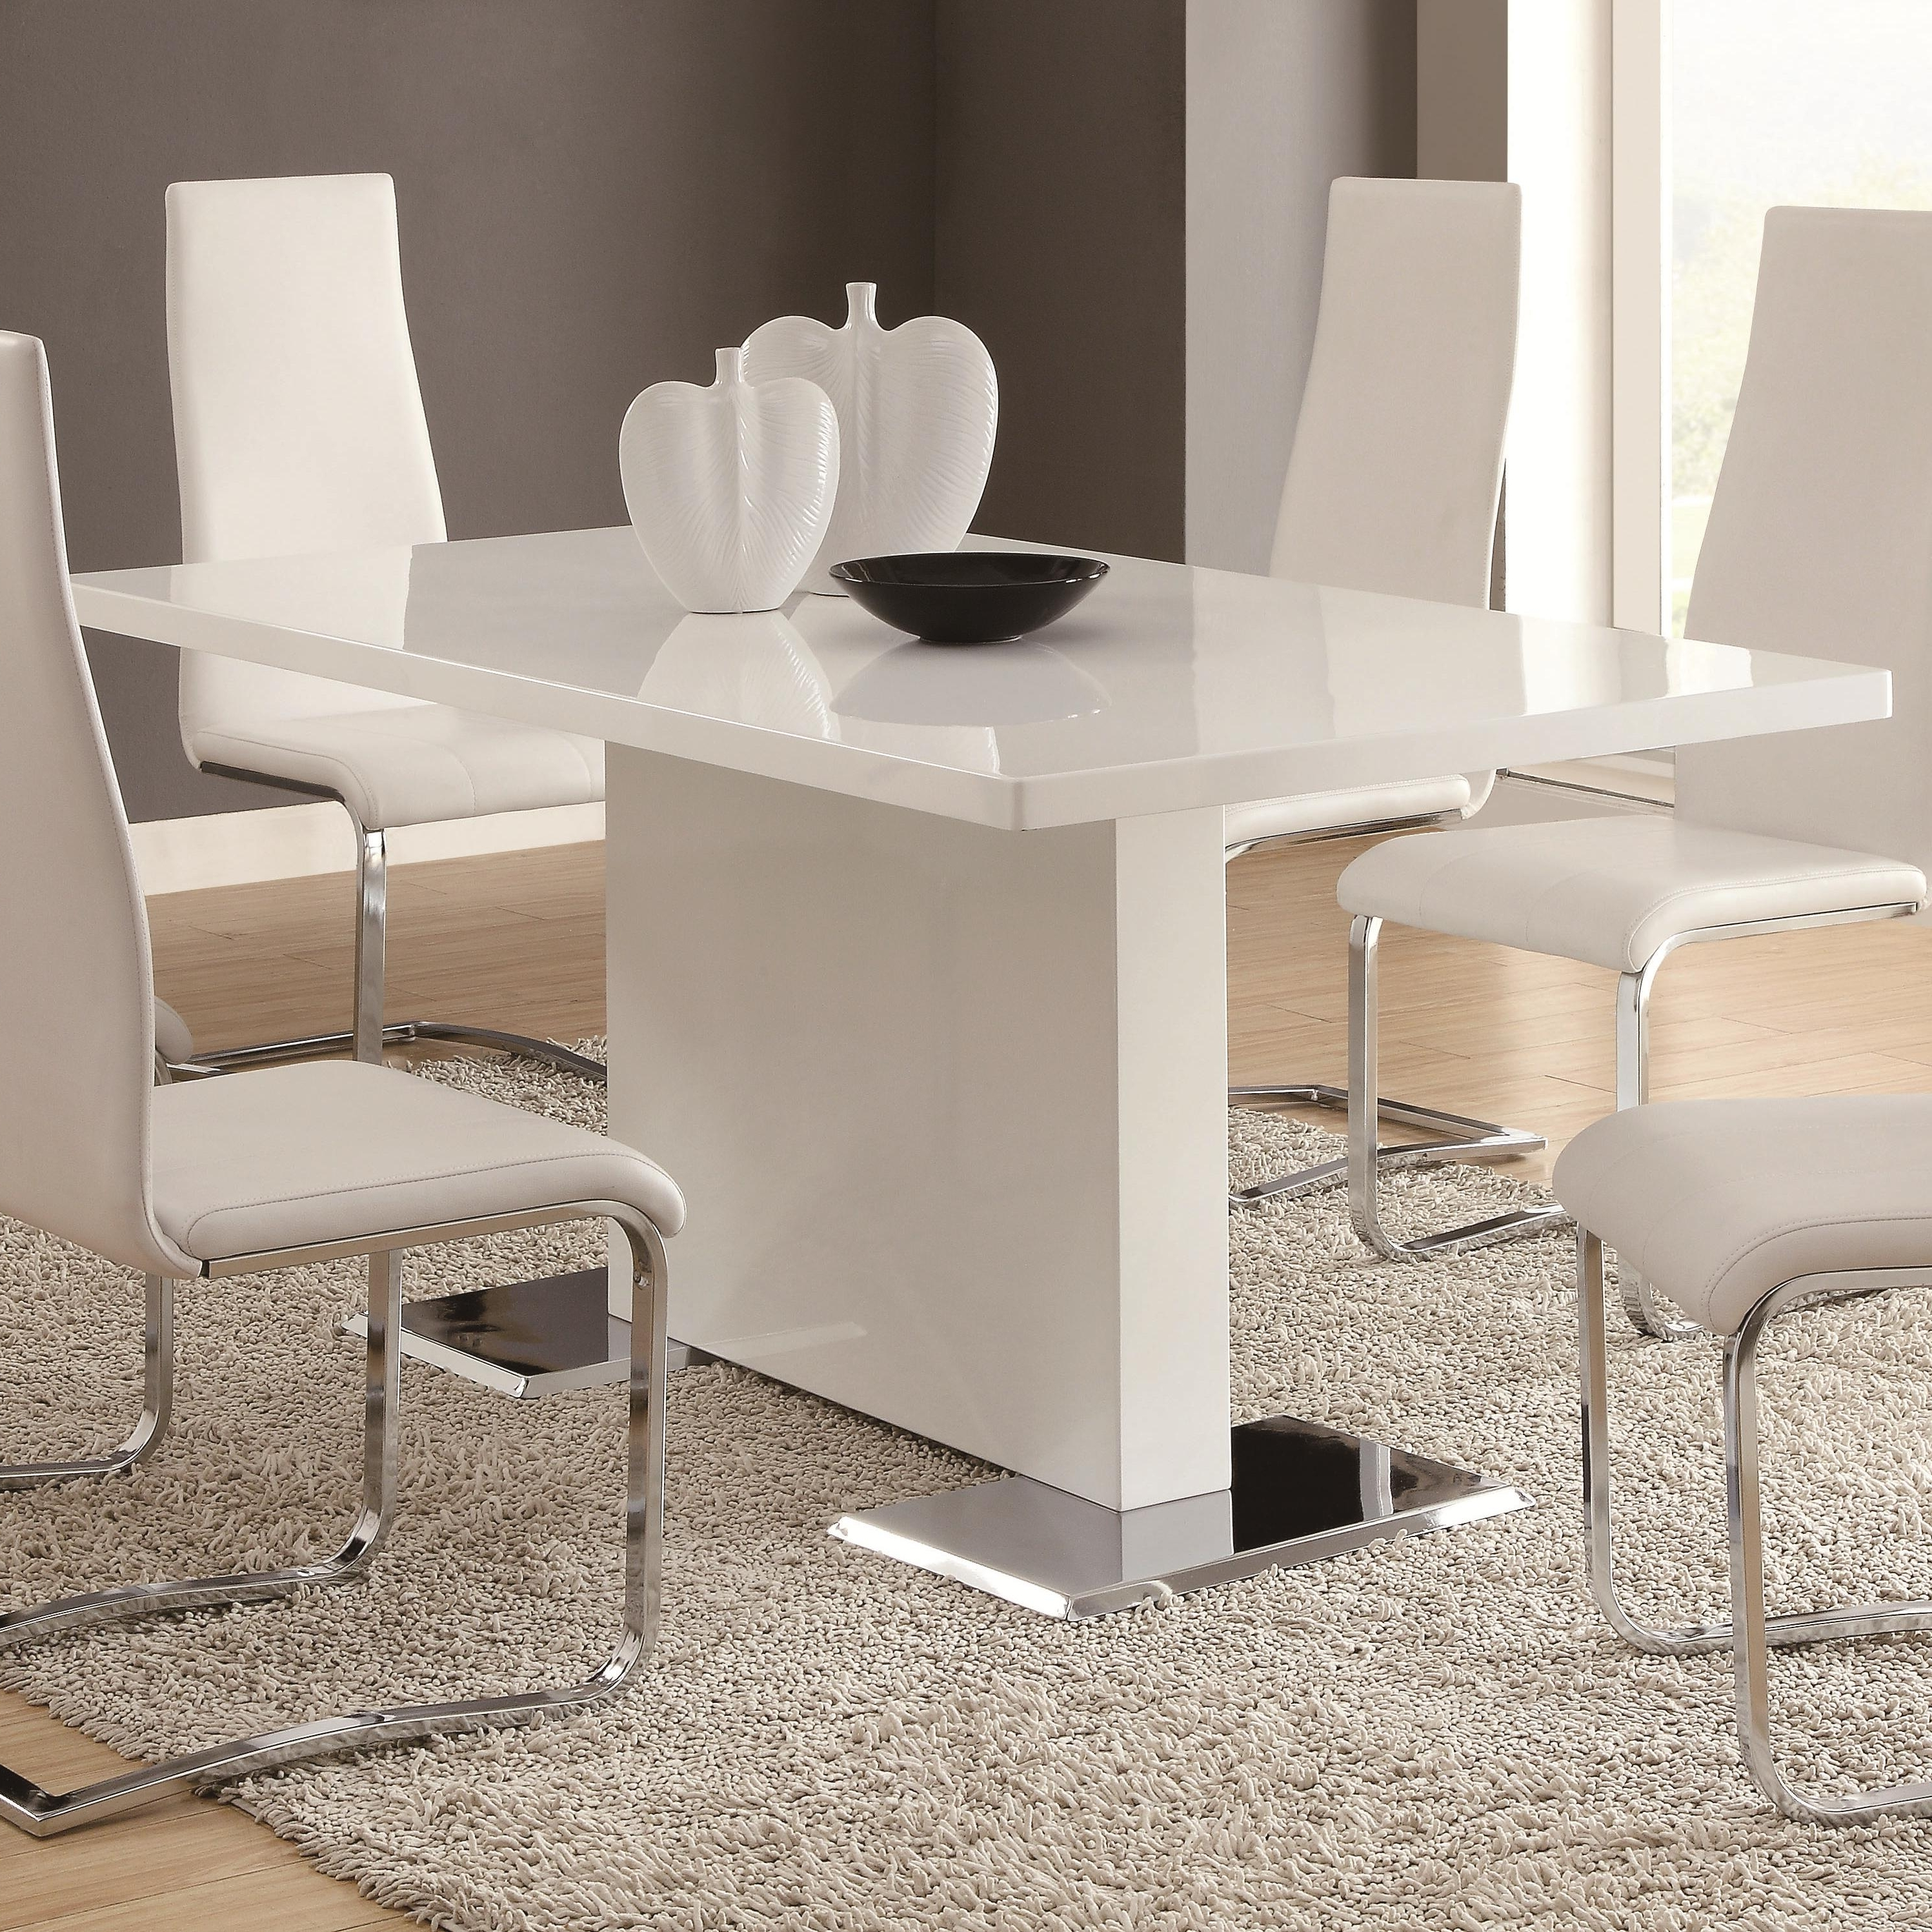 Coaster Furniture Nameth White Dining Table (Gallery 2 of 25)